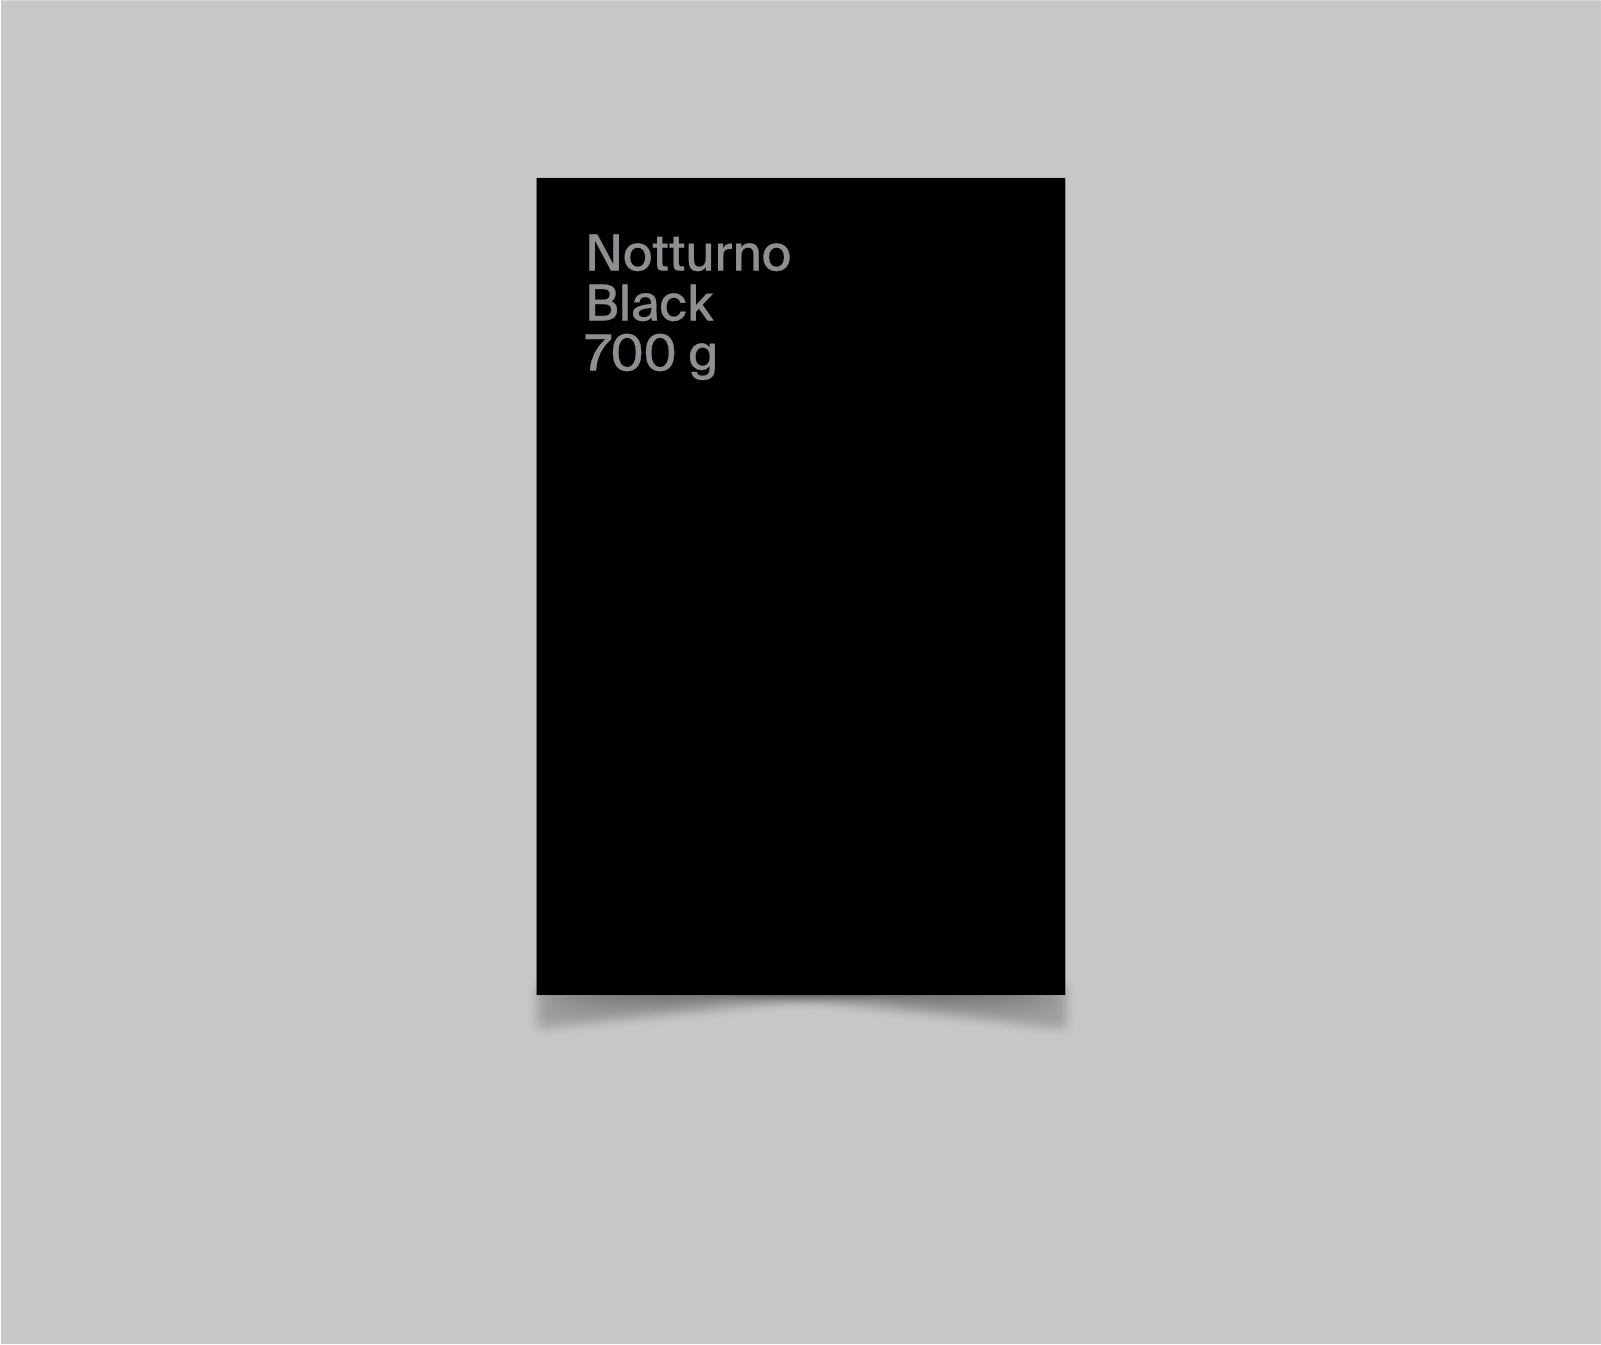 Black Thursday - The Notturno Edition